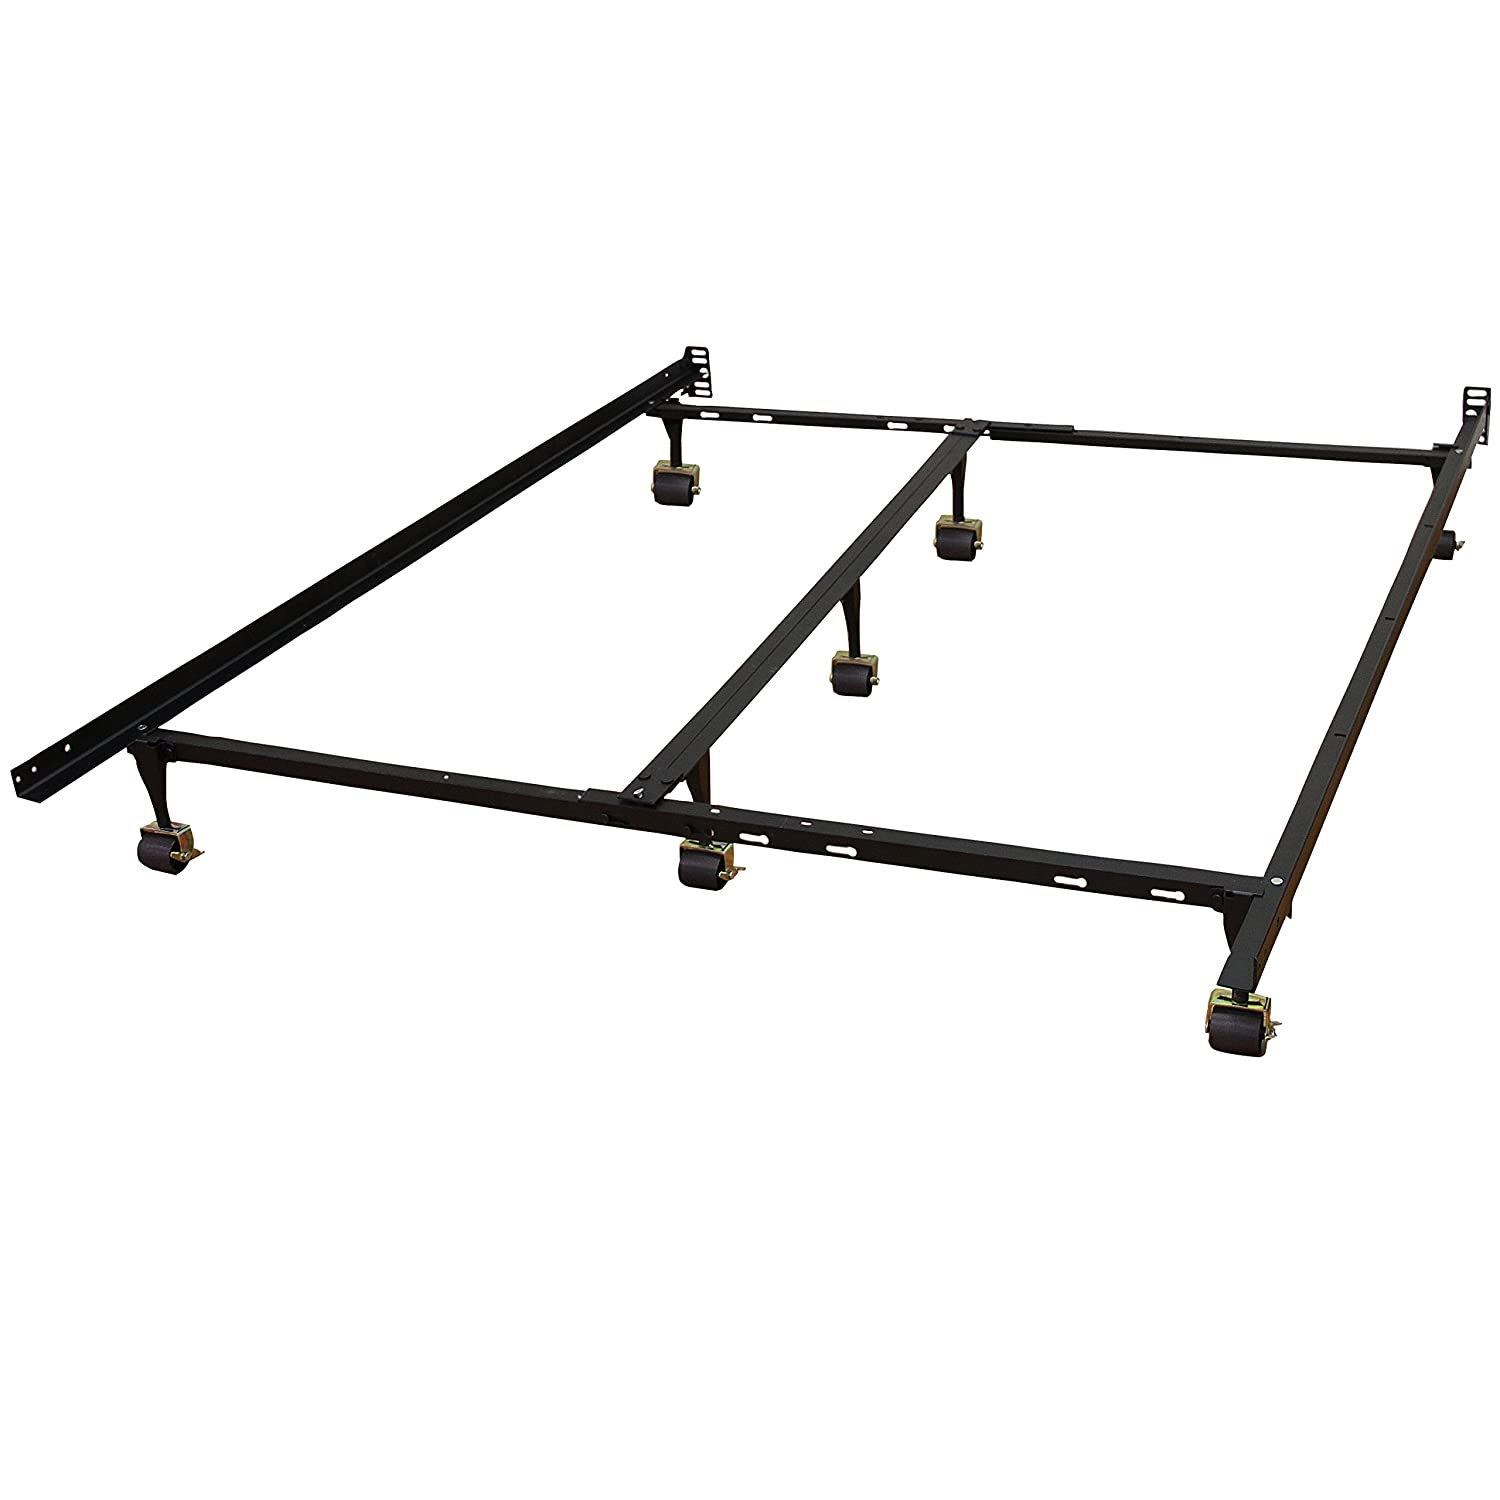 hercules universal heavy duty adjustable metal bed frame with double rail center bar and 7 locking rug rollers queentwin